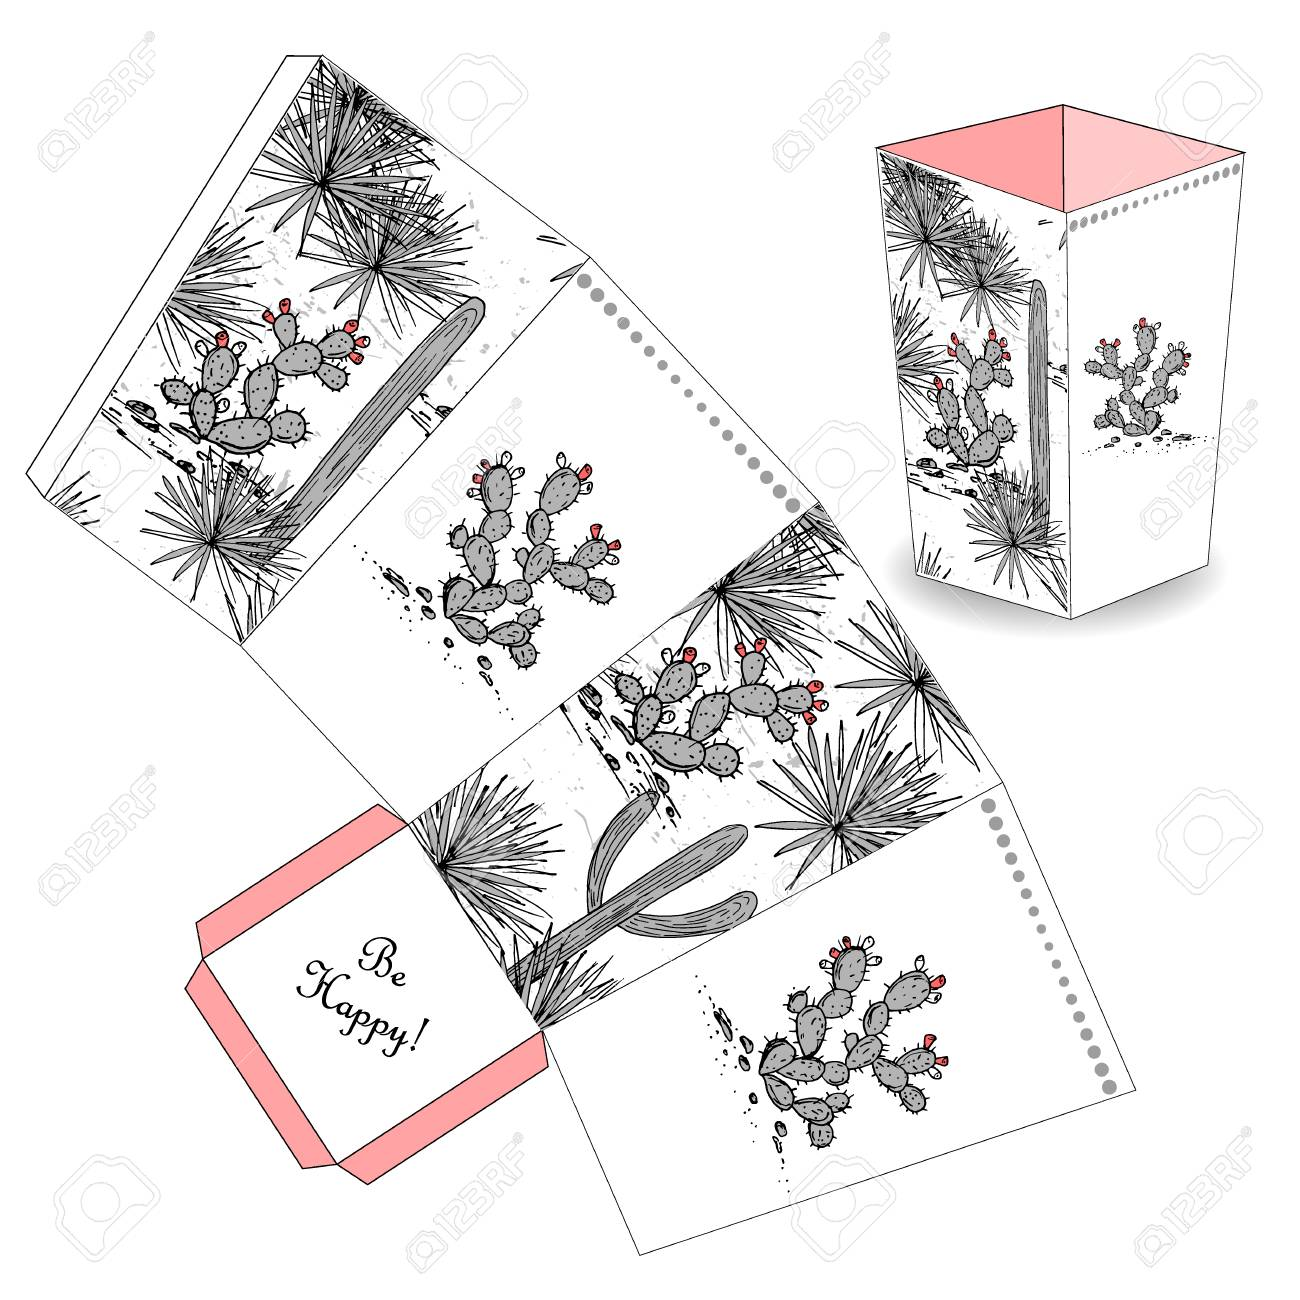 cute popcorn box with hand drawn sketch cactus prickly pear